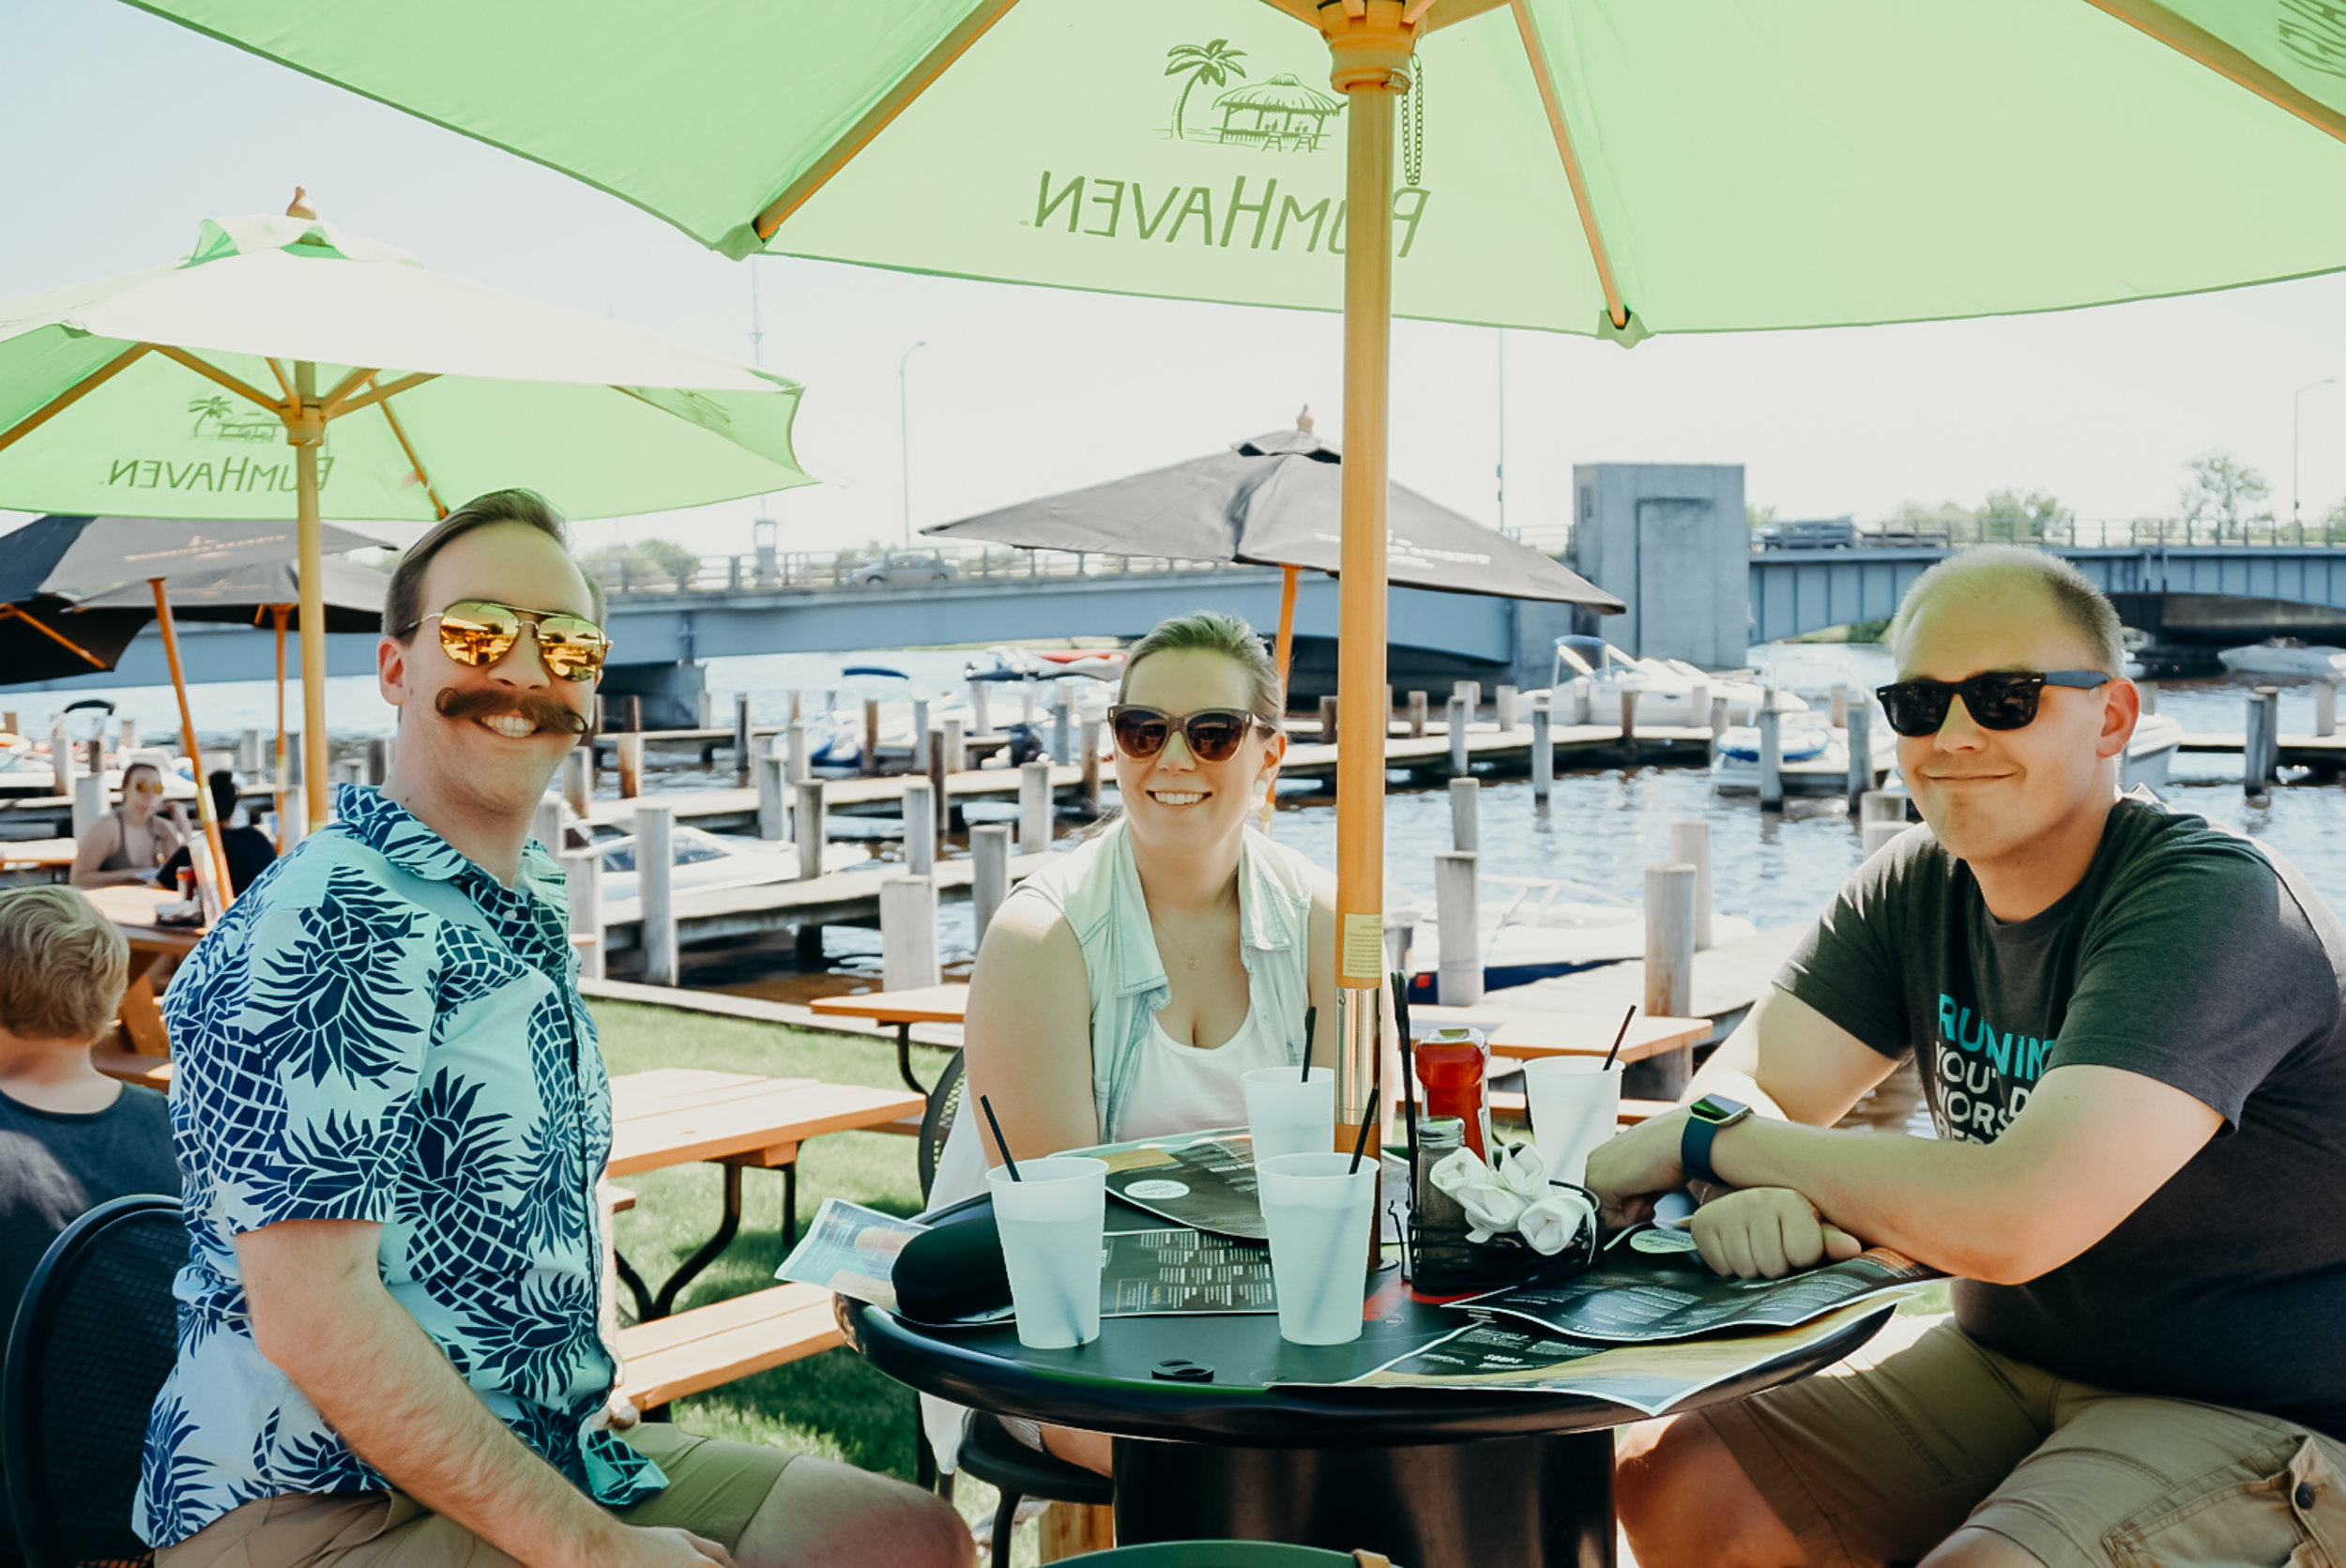 Lunch on the water, because you know, Wisconsin.  Sadly, my beautiful, new Sony digital camera got knocked off the table at this restaurant. It is not currently working. I don't want to talk about it.